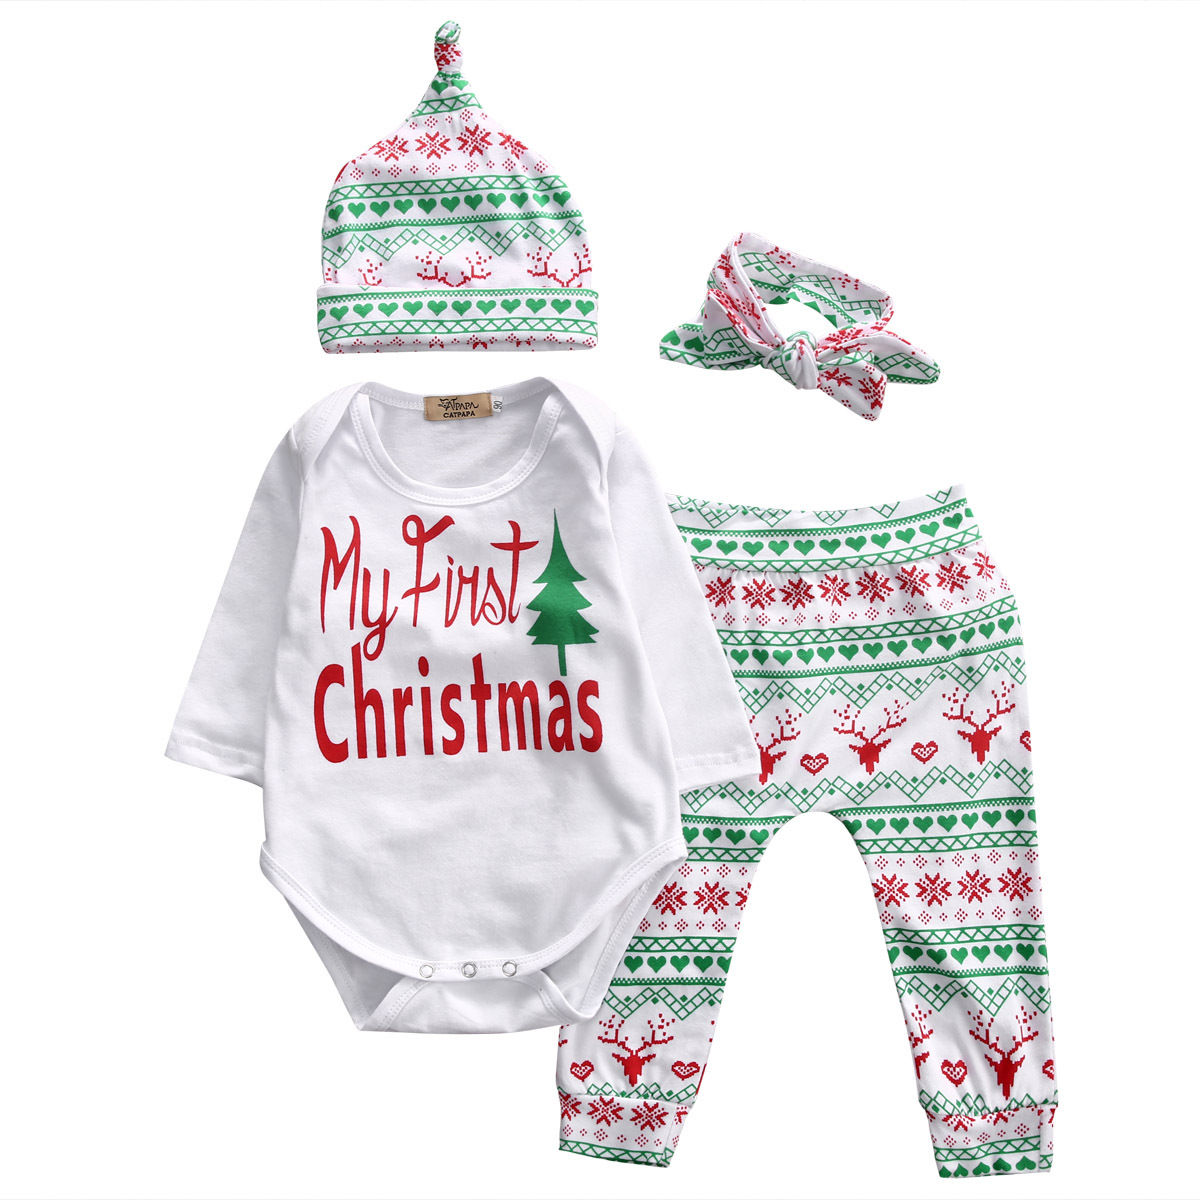 Boys Romper Pants Casual Cute Leggings Girls Clothing 4PCS Set Christmas Infant Baby Boy Girl Clothes Tops Outfits Garments Kids cute black jumpsuits outfits clothing baby kid boy girl wings newborn toddler child infant kids boys girls clothes romper 0 18m